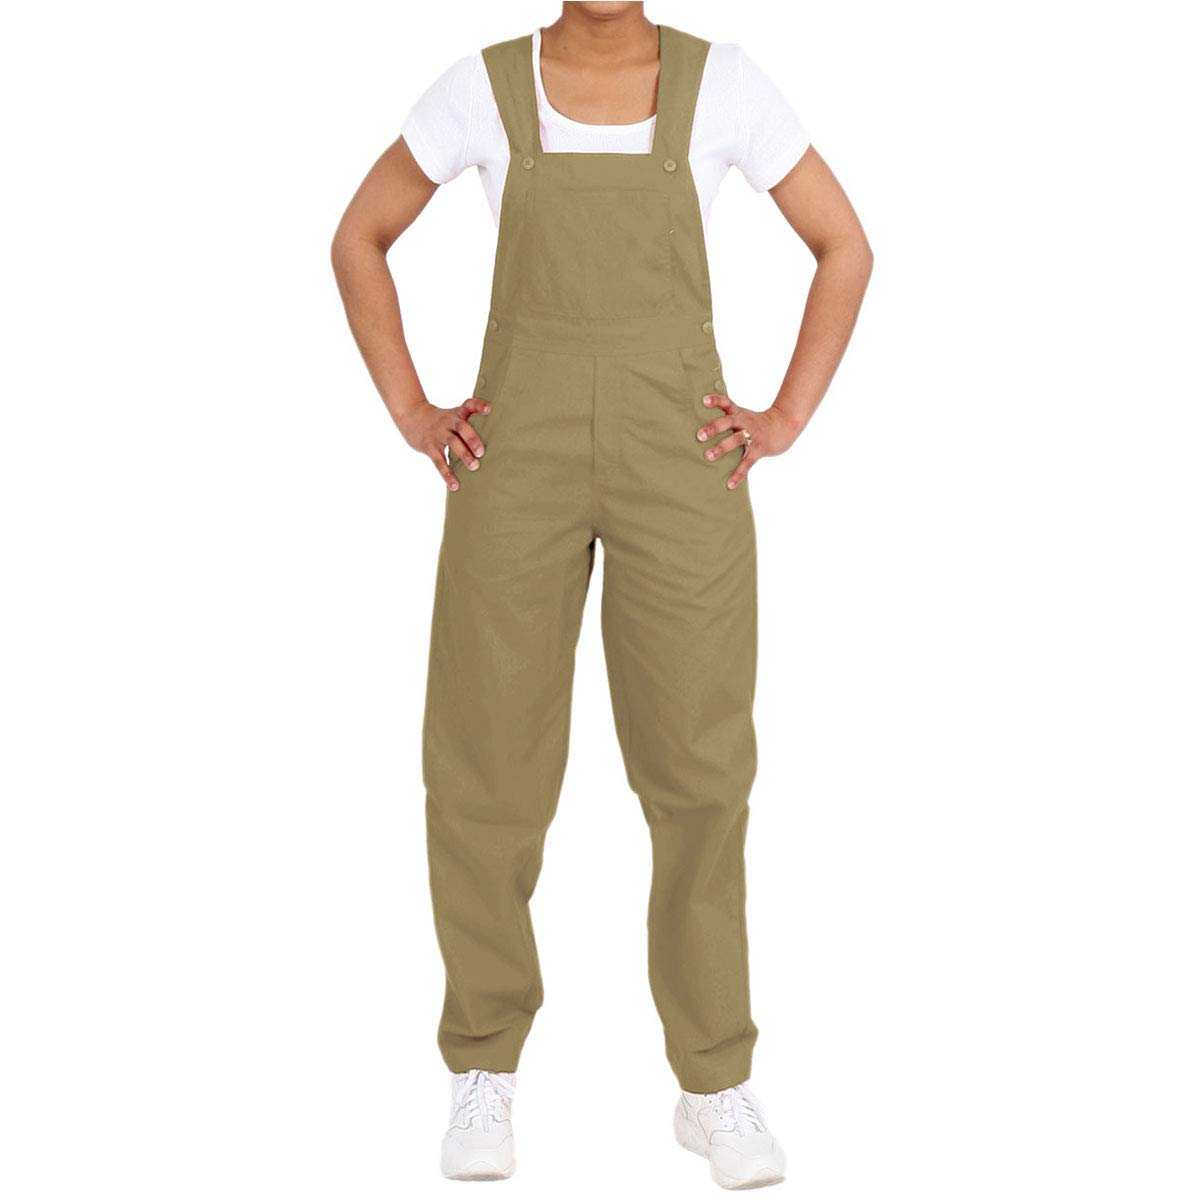 Medgear Unisex Overalls All Around Use